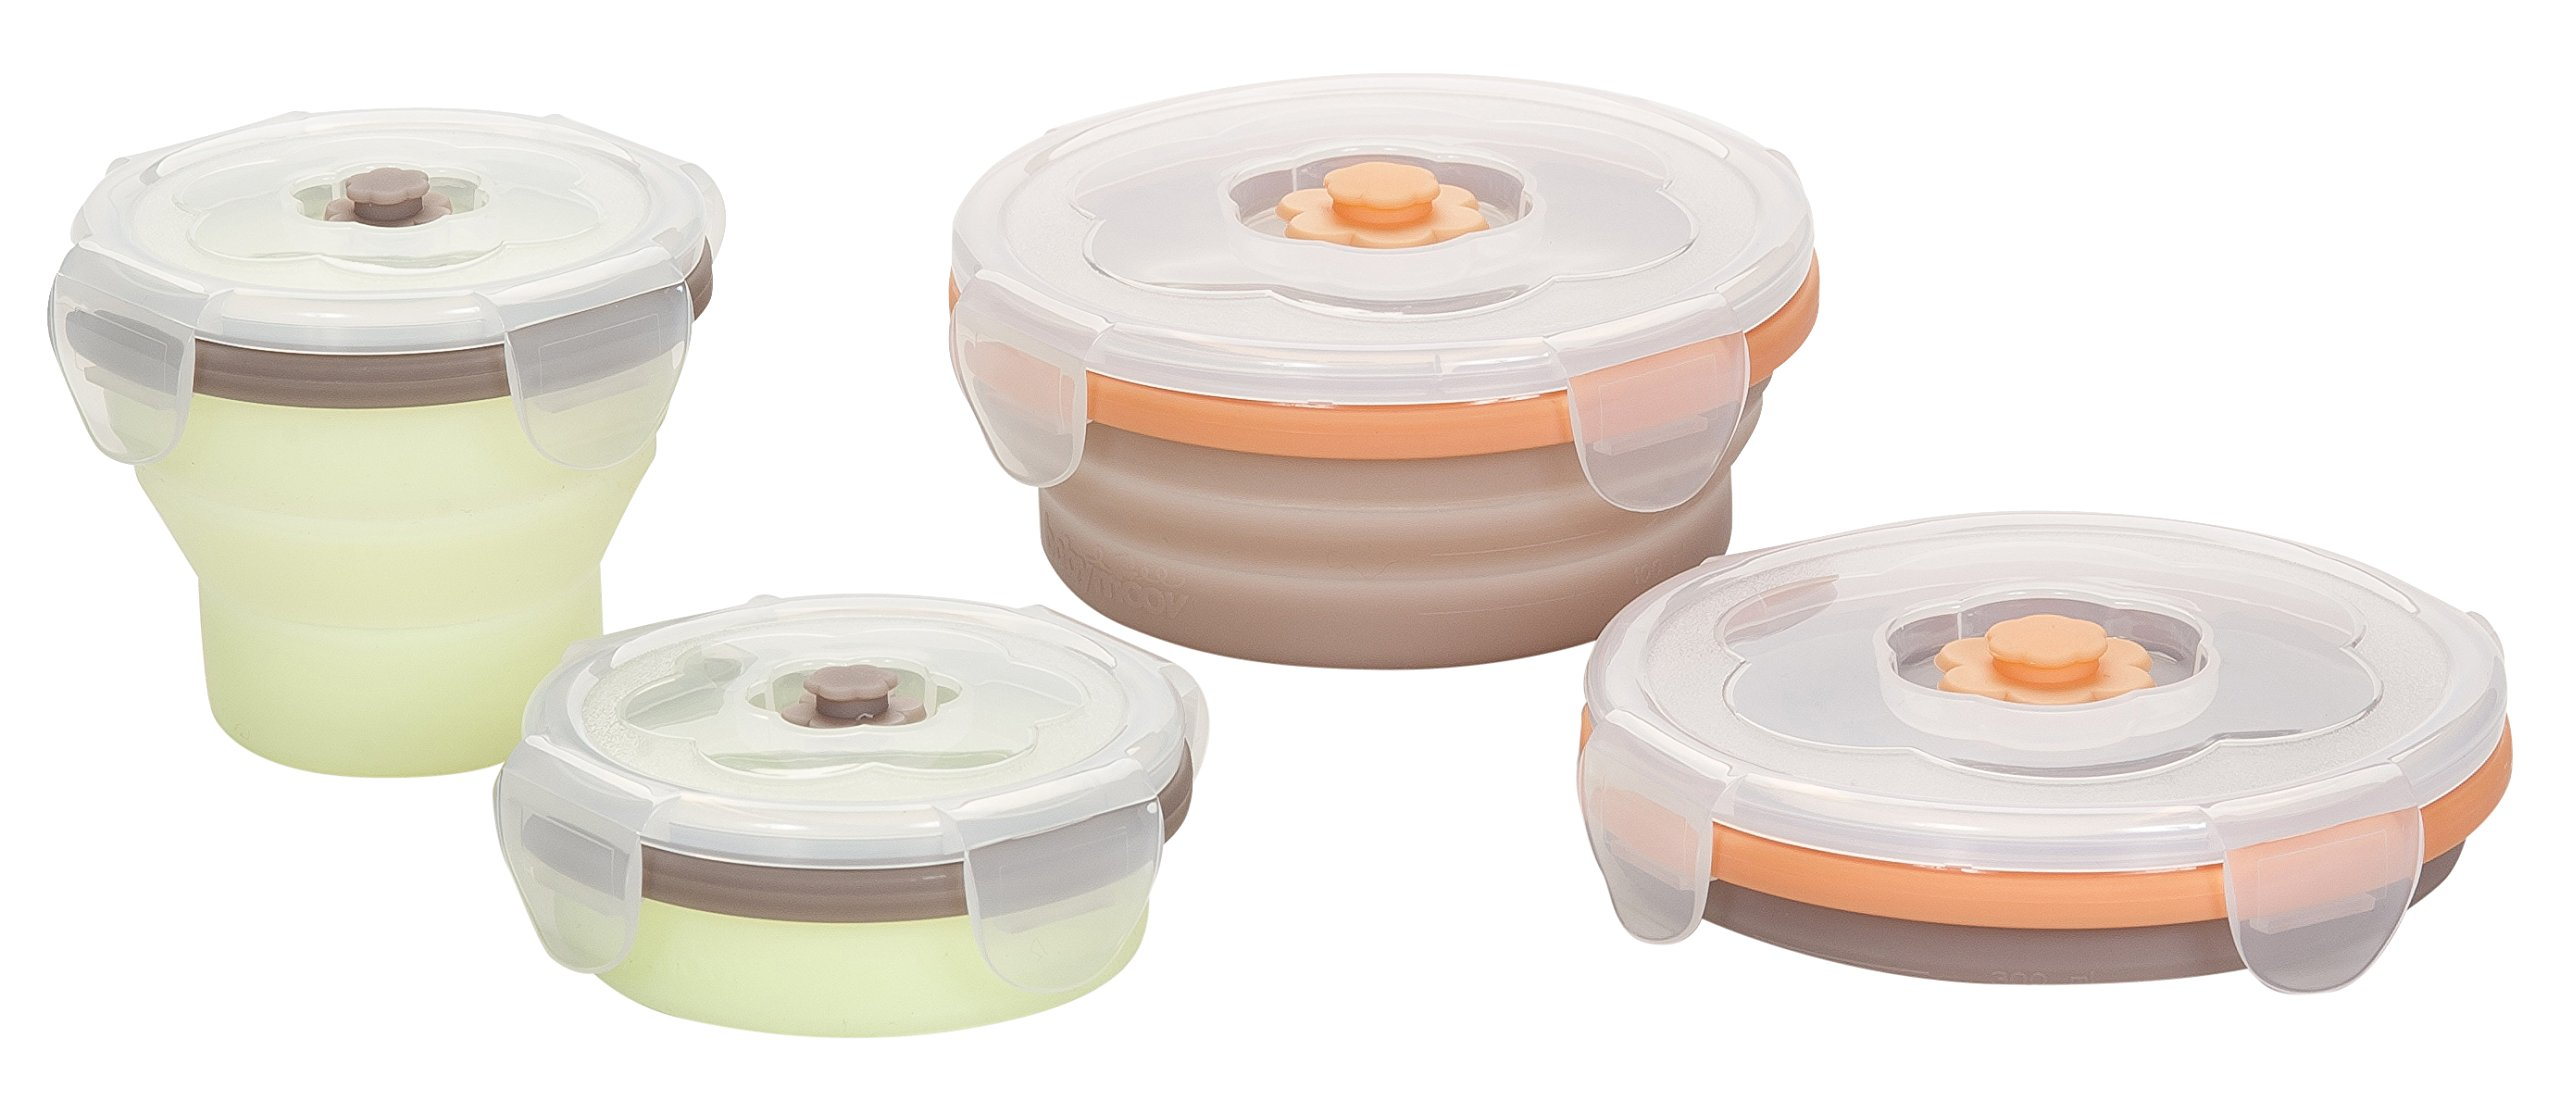 Babymoov 4 Piece Food Collapsible Storage Containers